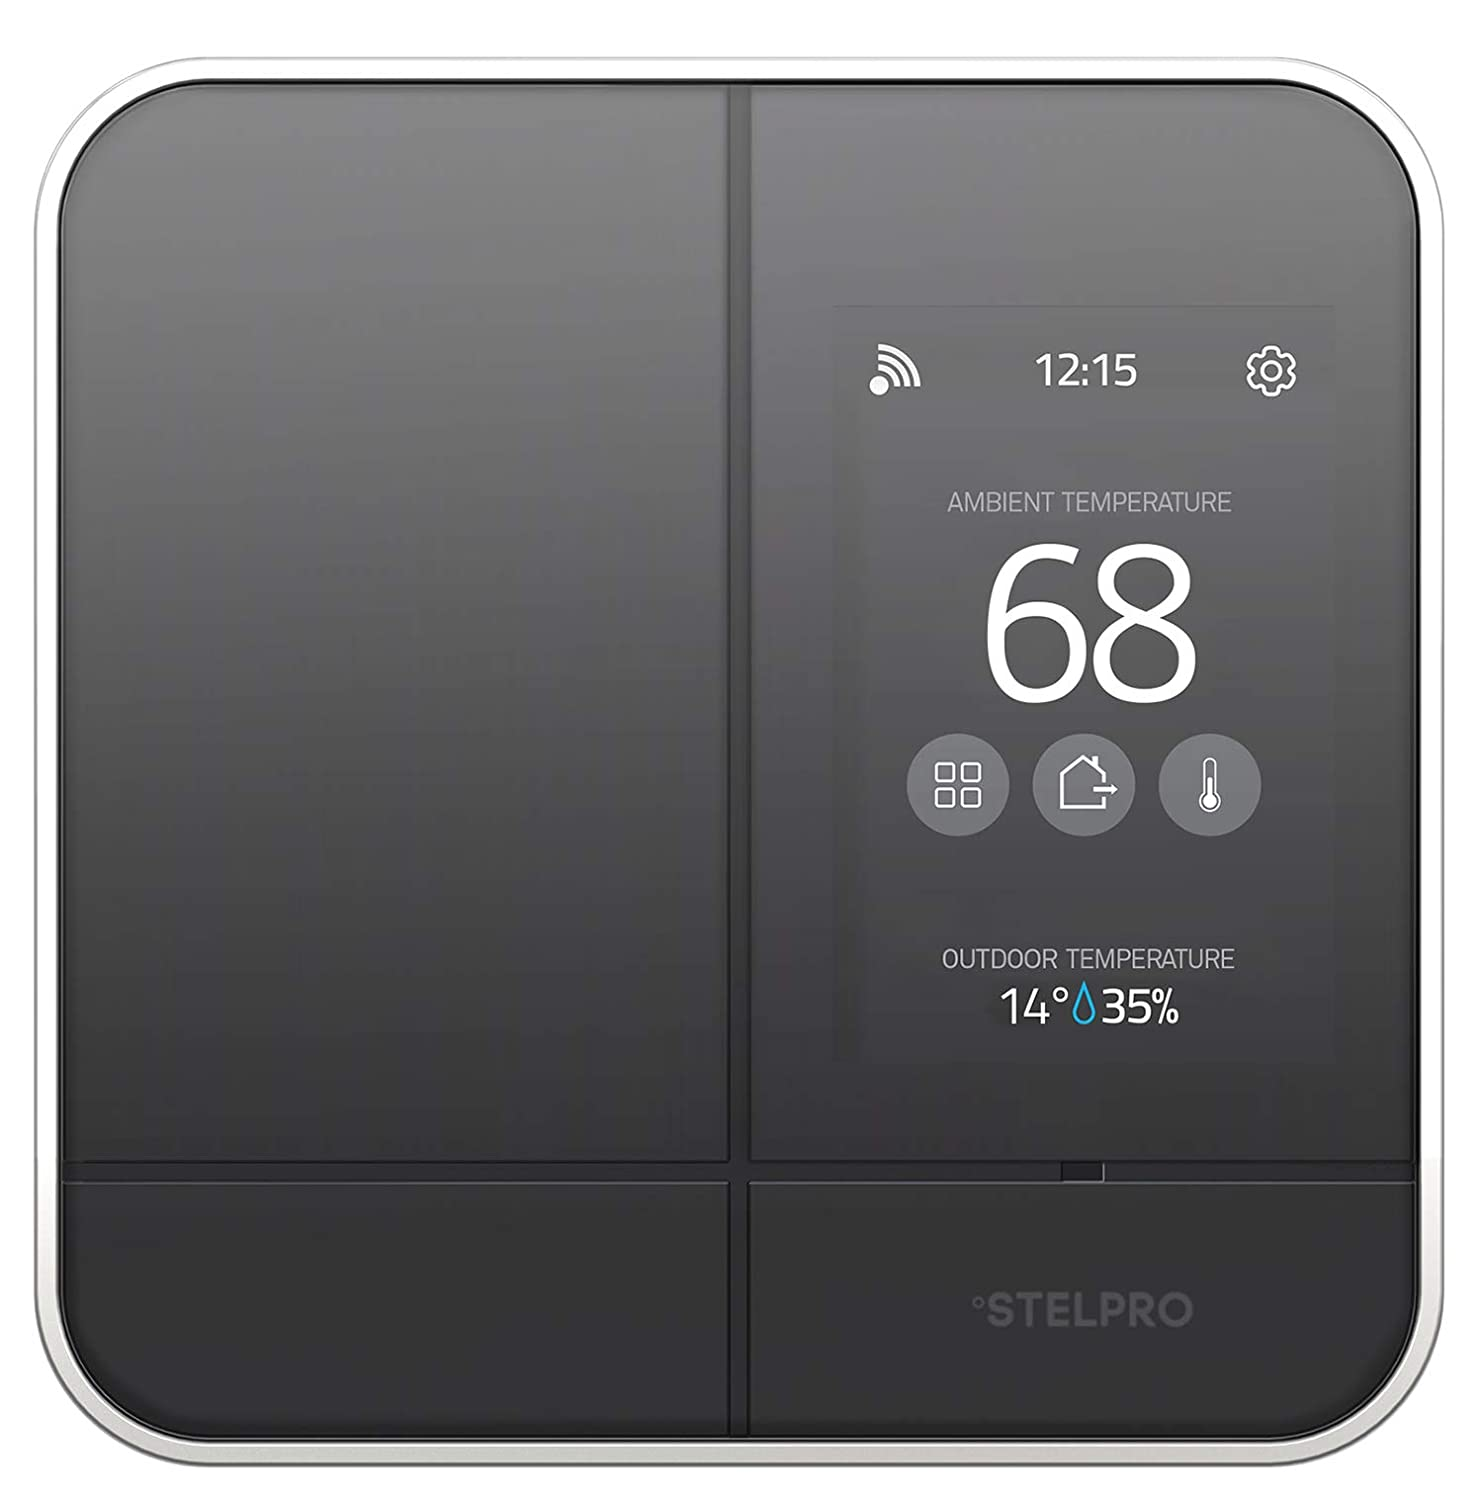 Stelpro ASMC402 Smart Home Wi-Fi Controller Thermostat Adds Maestro Connectivity to Line Voltage Electric Baseboards, Convectors, and Fan Heaters